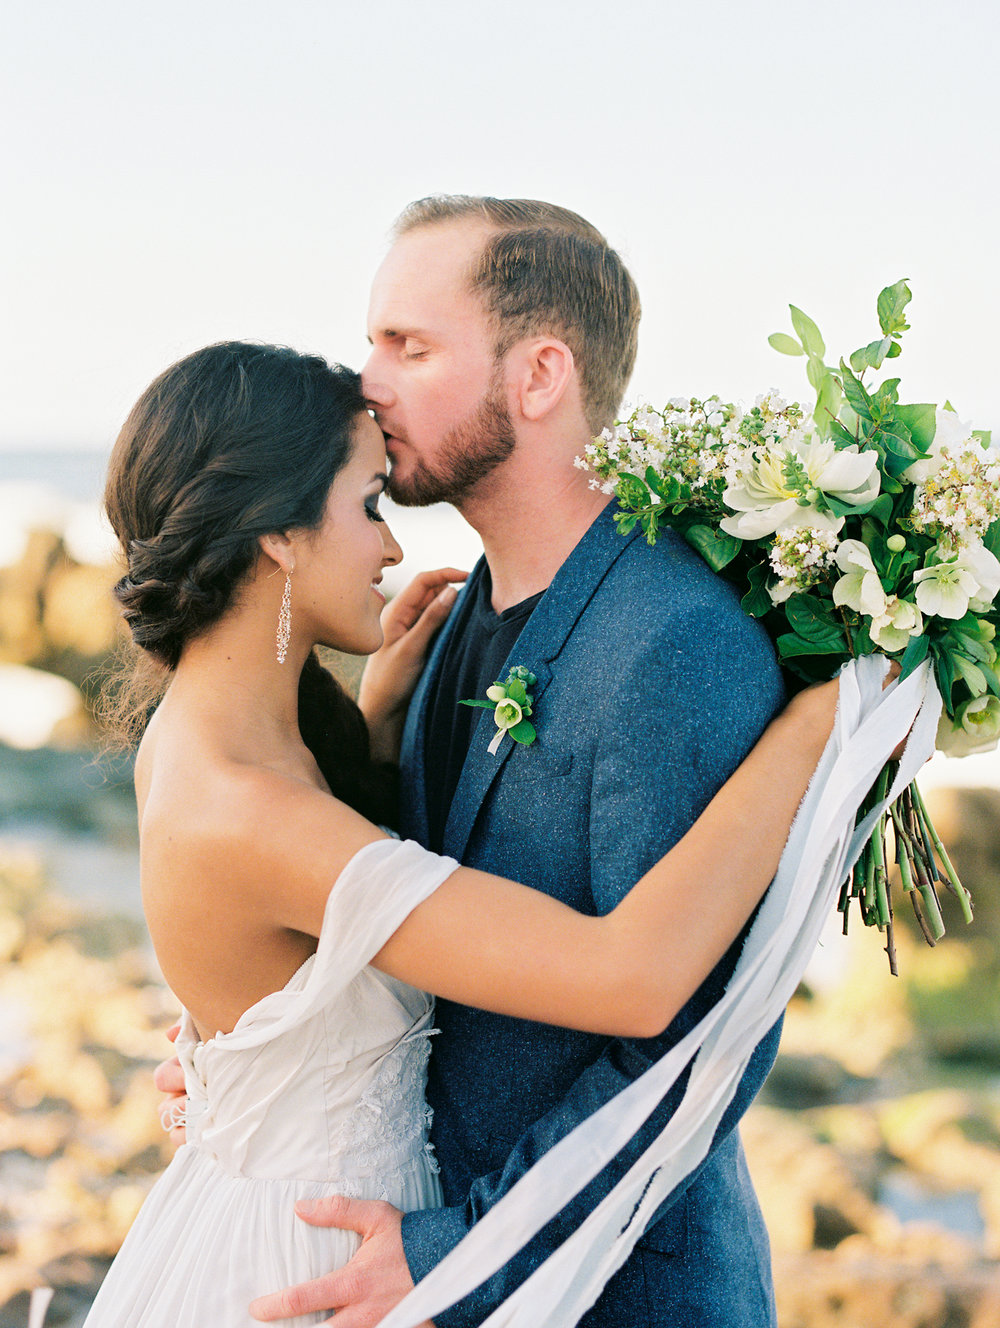 coral cove, jupiter beach FL, palm beach wedding photos, bride and groom photos